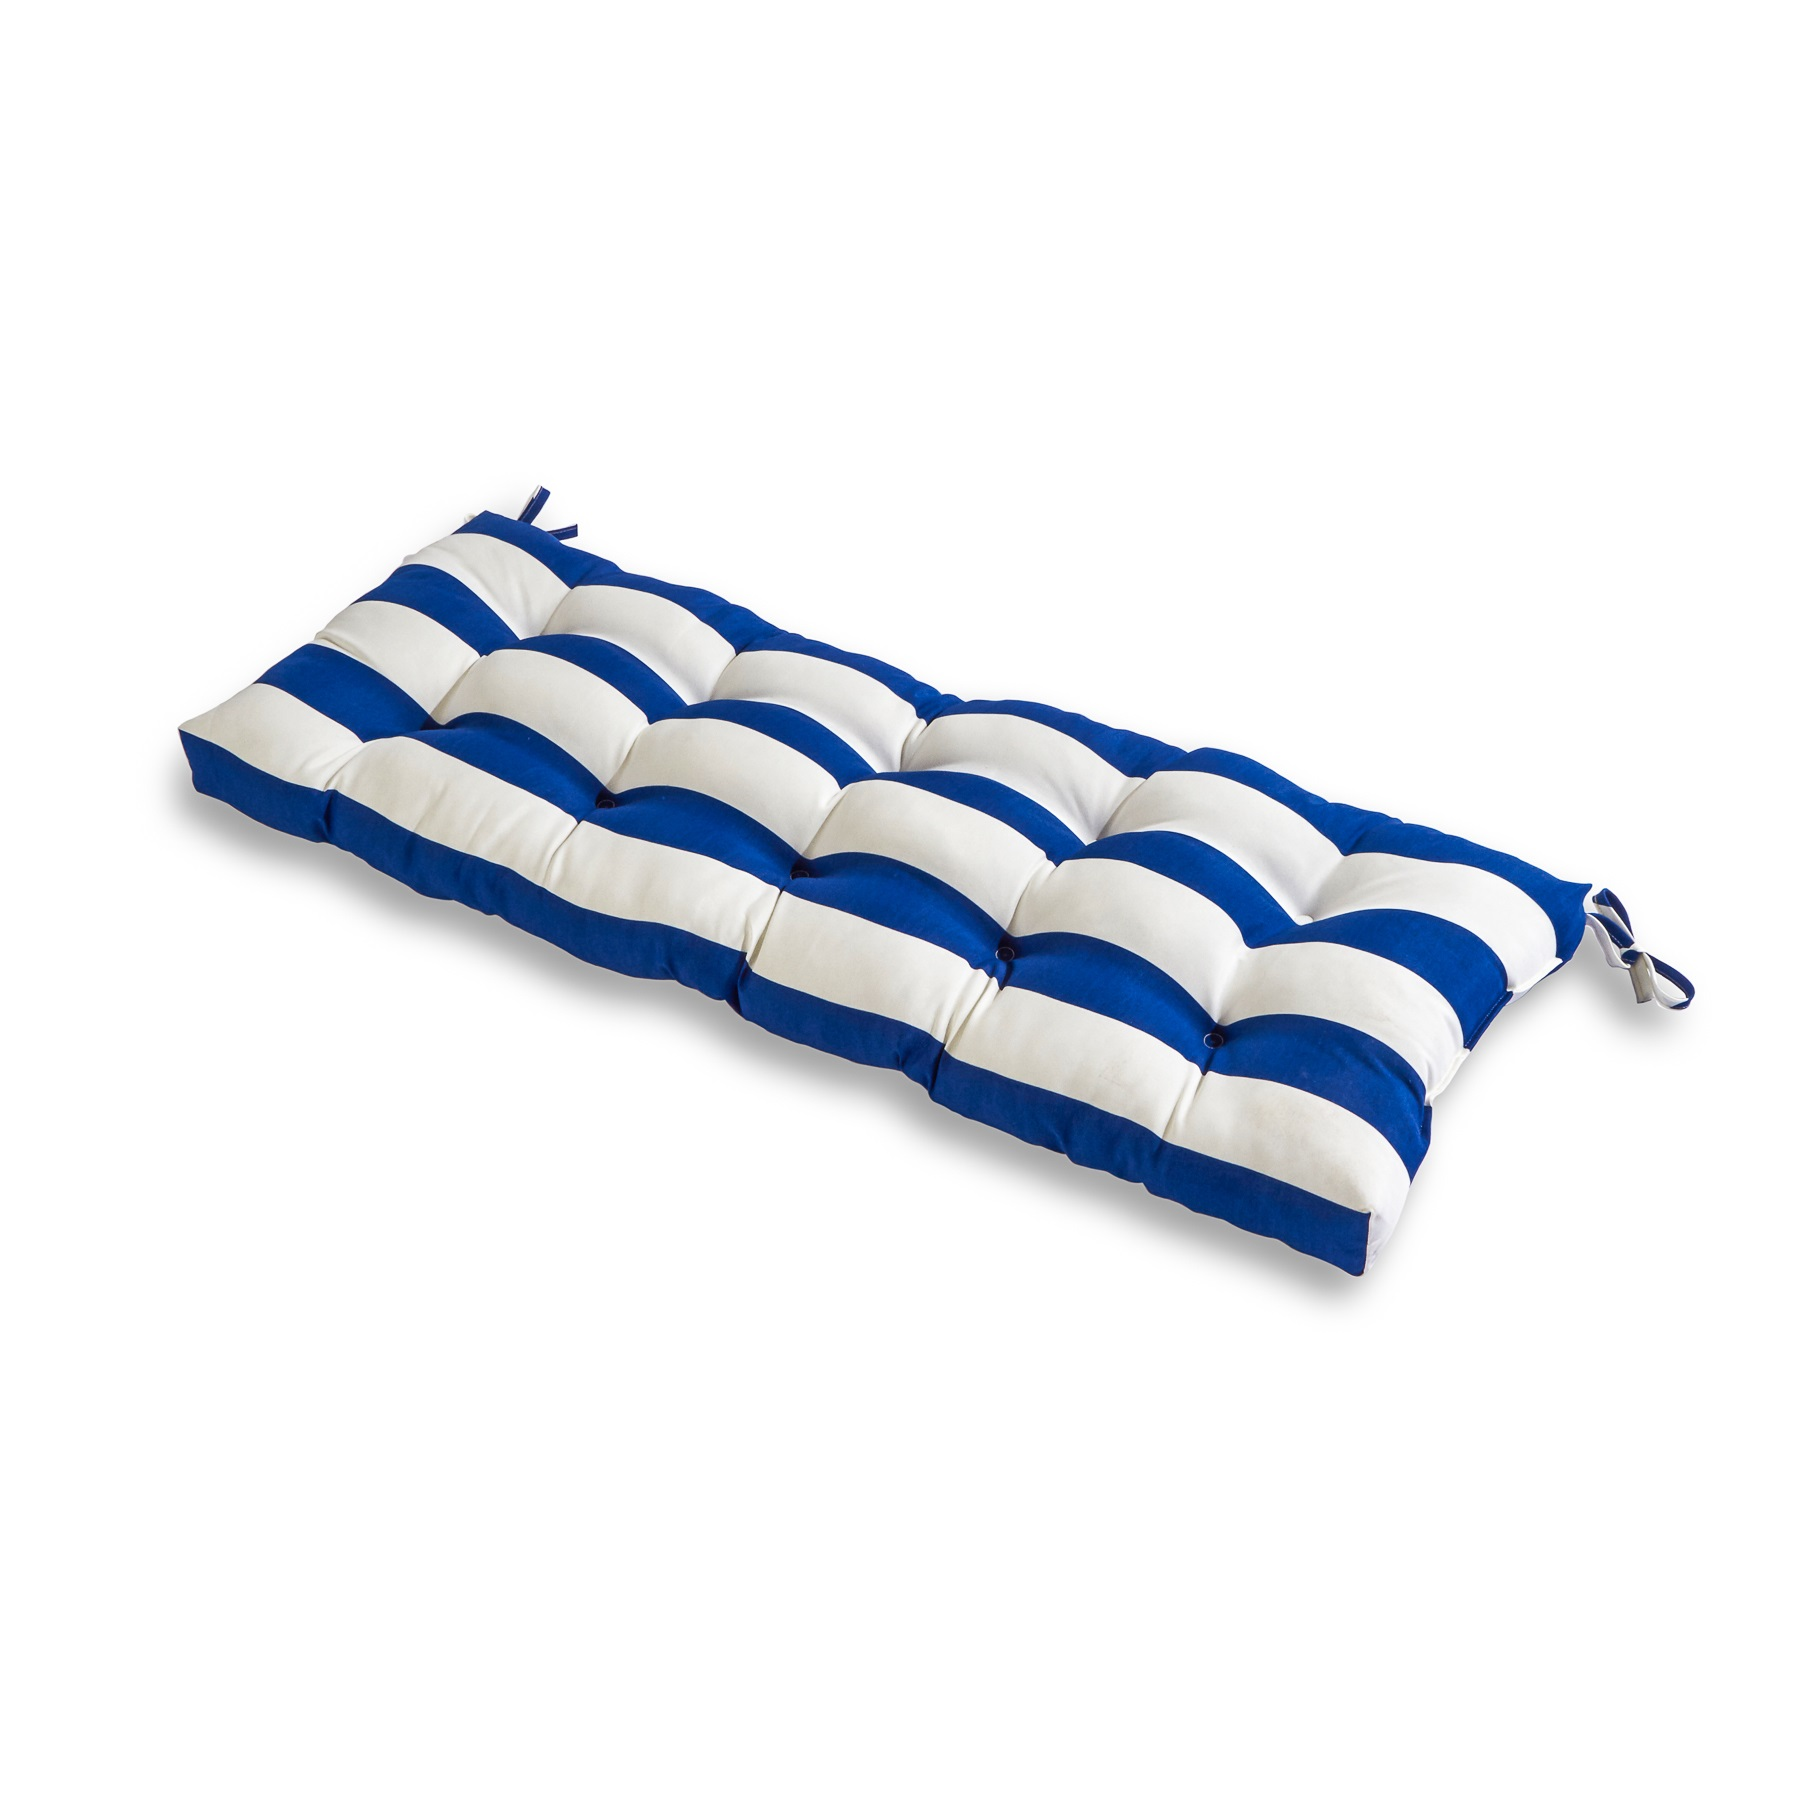 Cabana Stripe 51 x 18 in. Outdoor Bench Cushion